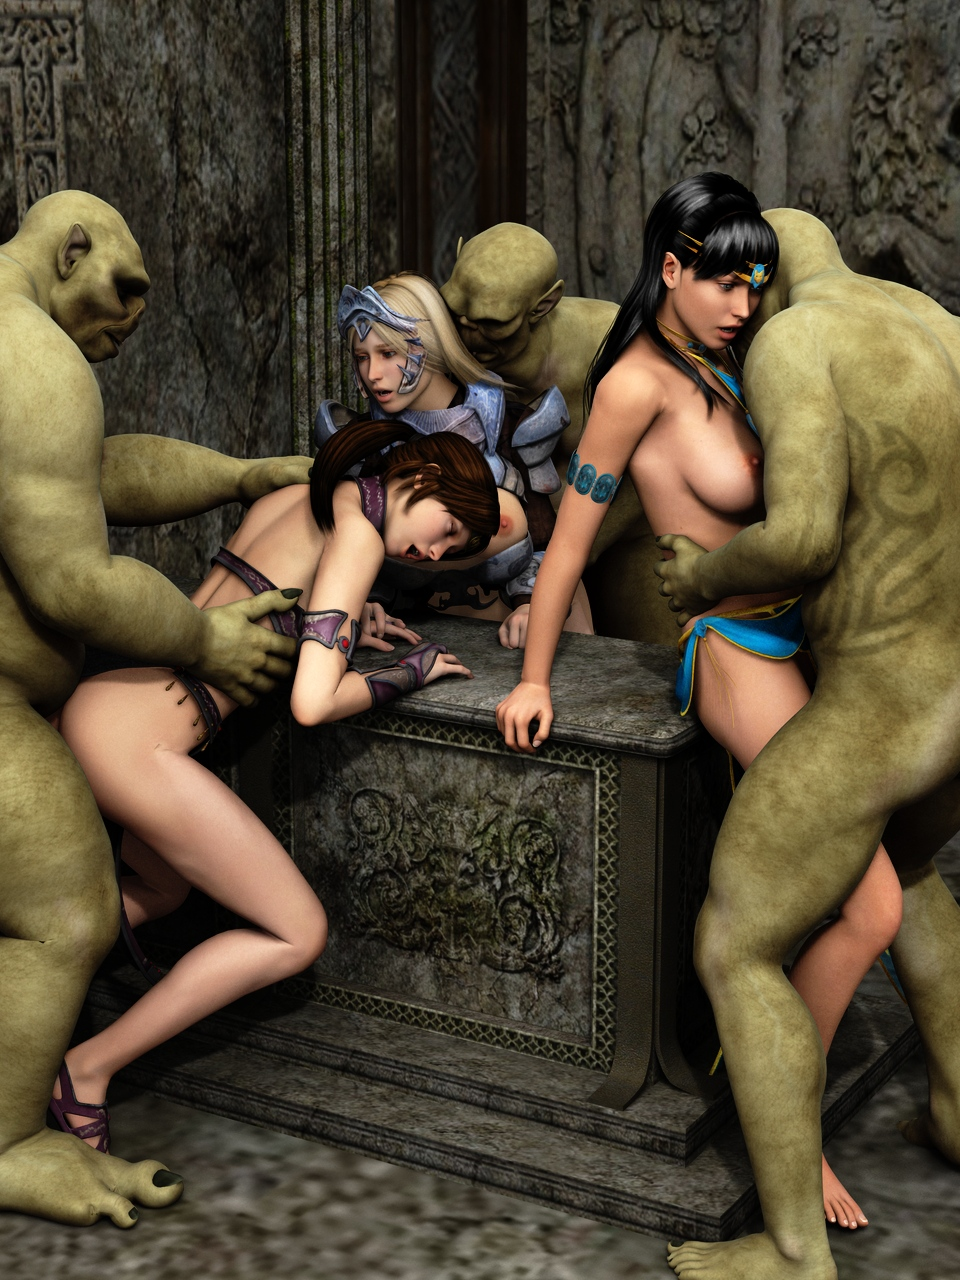 Monster black cock's and fucking wallpapers naked images